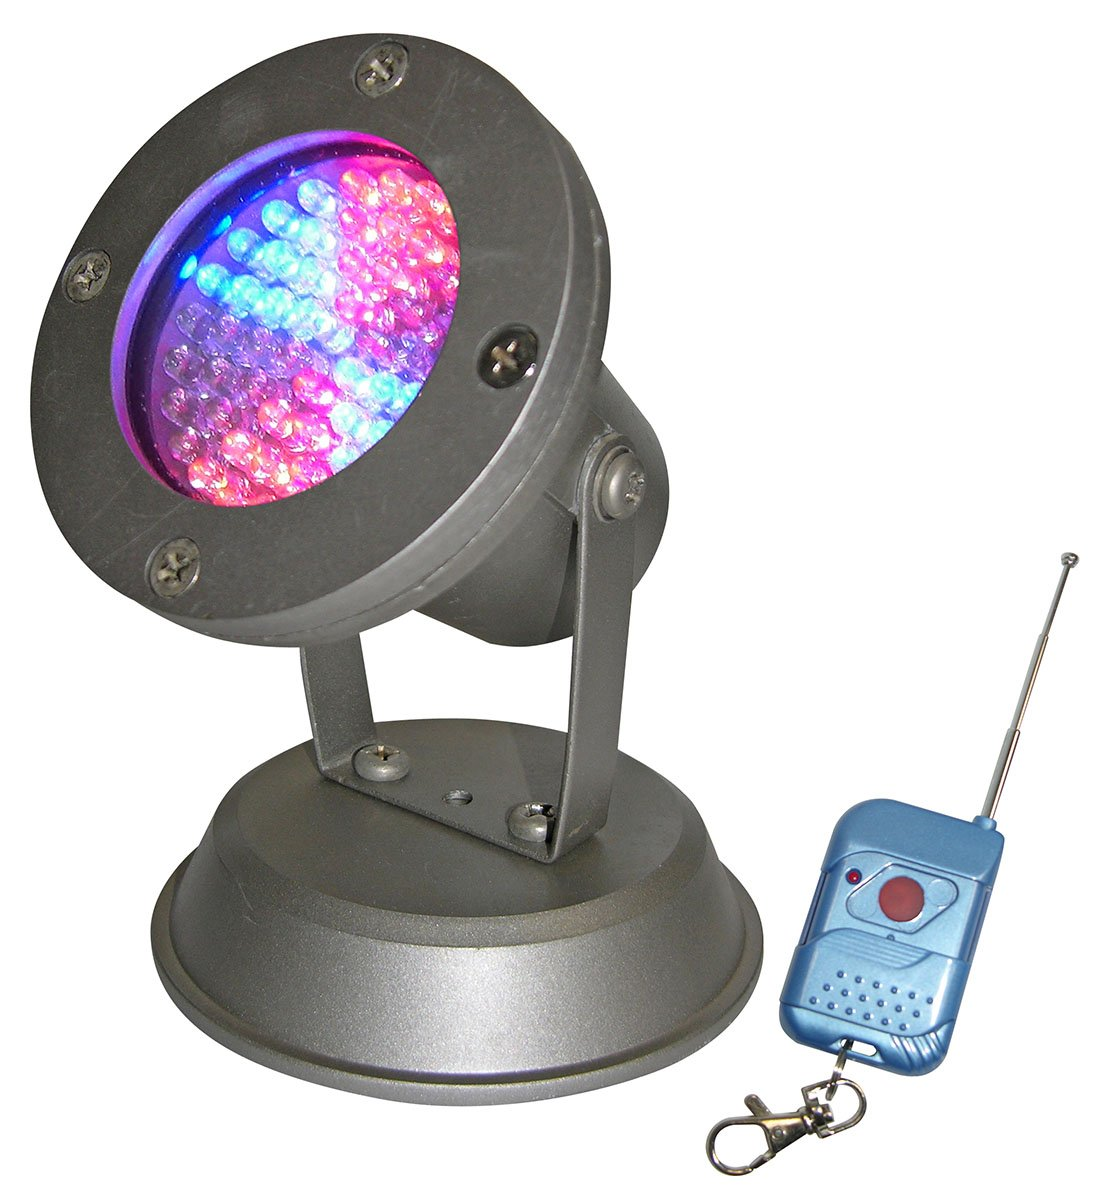 60 Super Bright LED Changing Pond Light w Wireless Controller